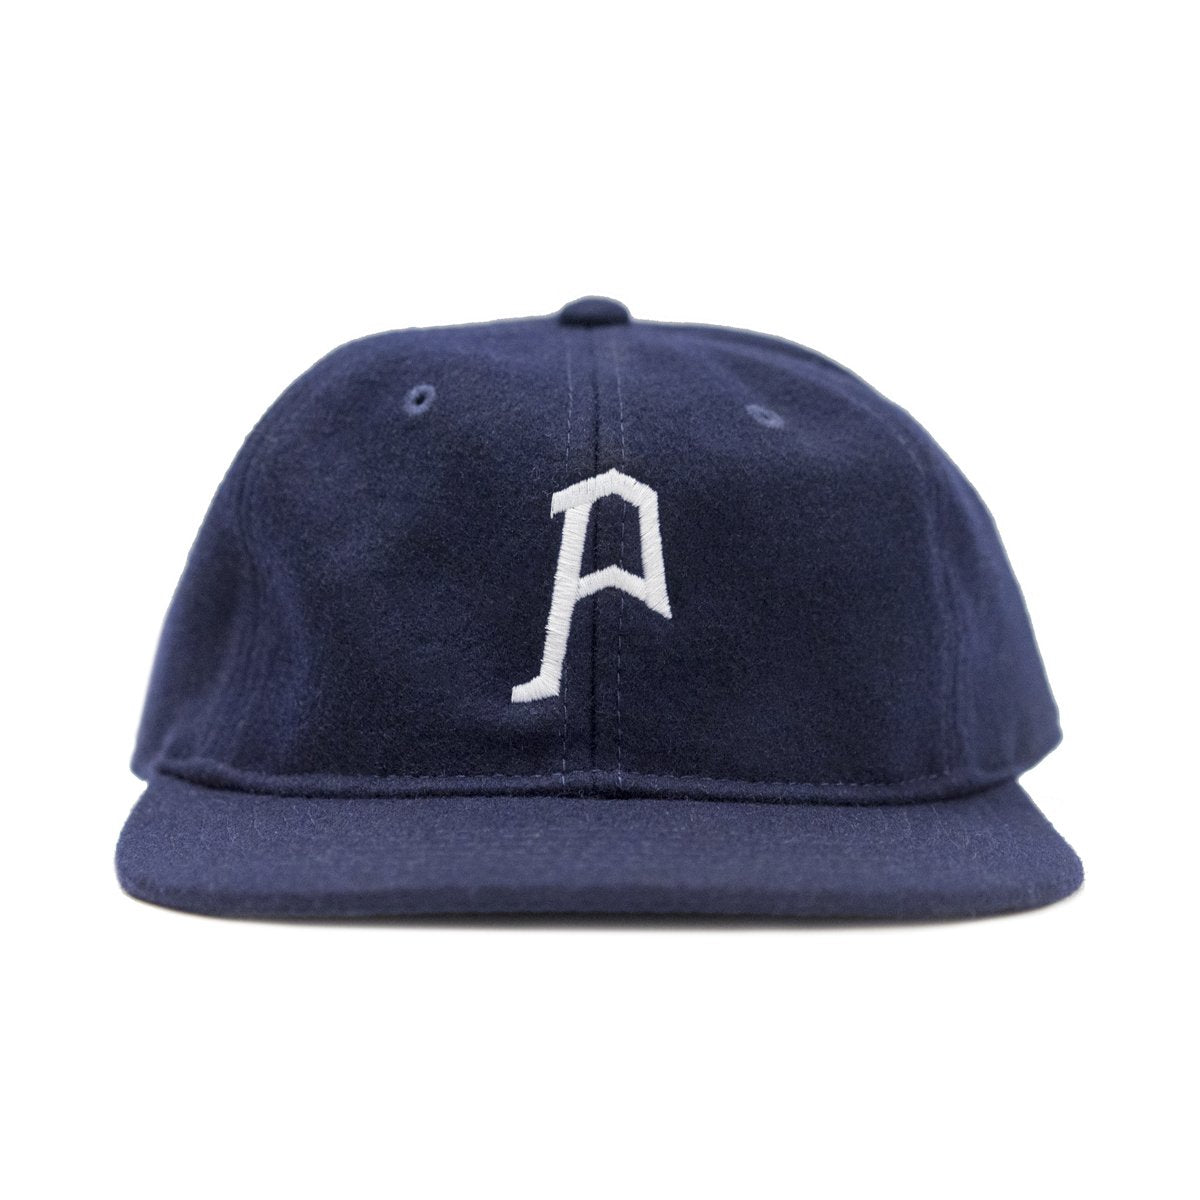 PC PERTONE CAP NAVY